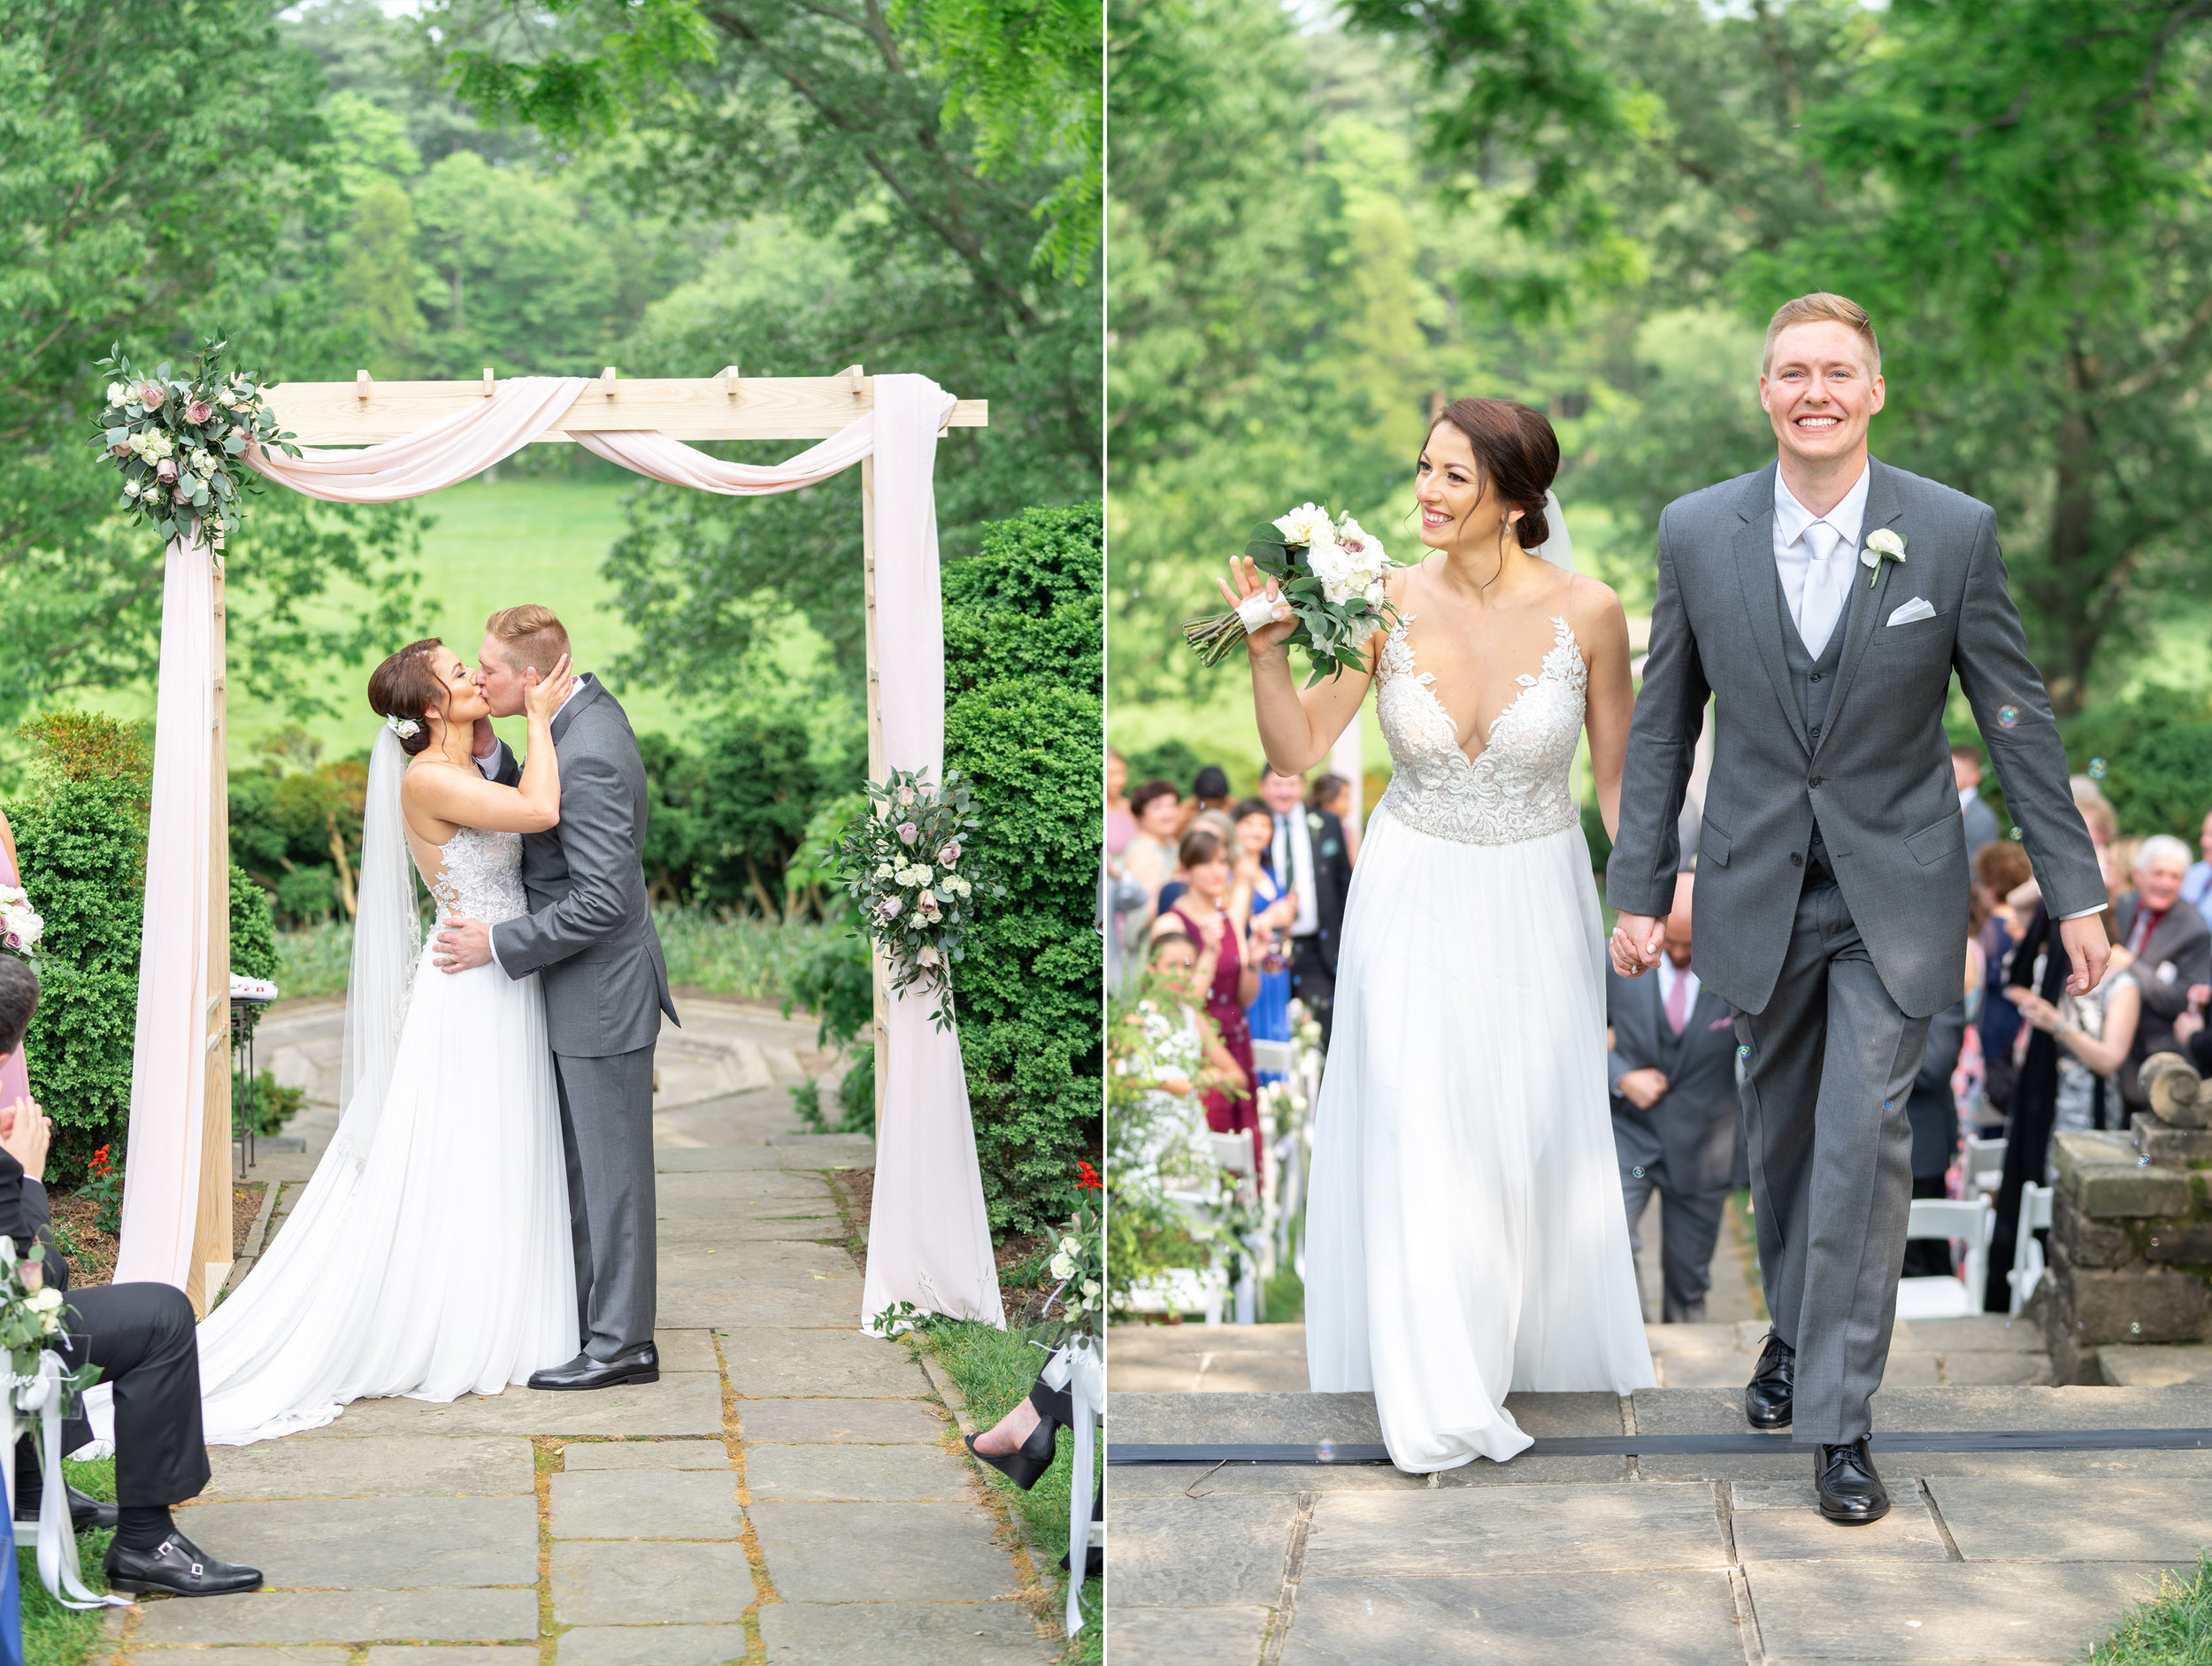 Wedding ceremony photography at Glenview Mansion